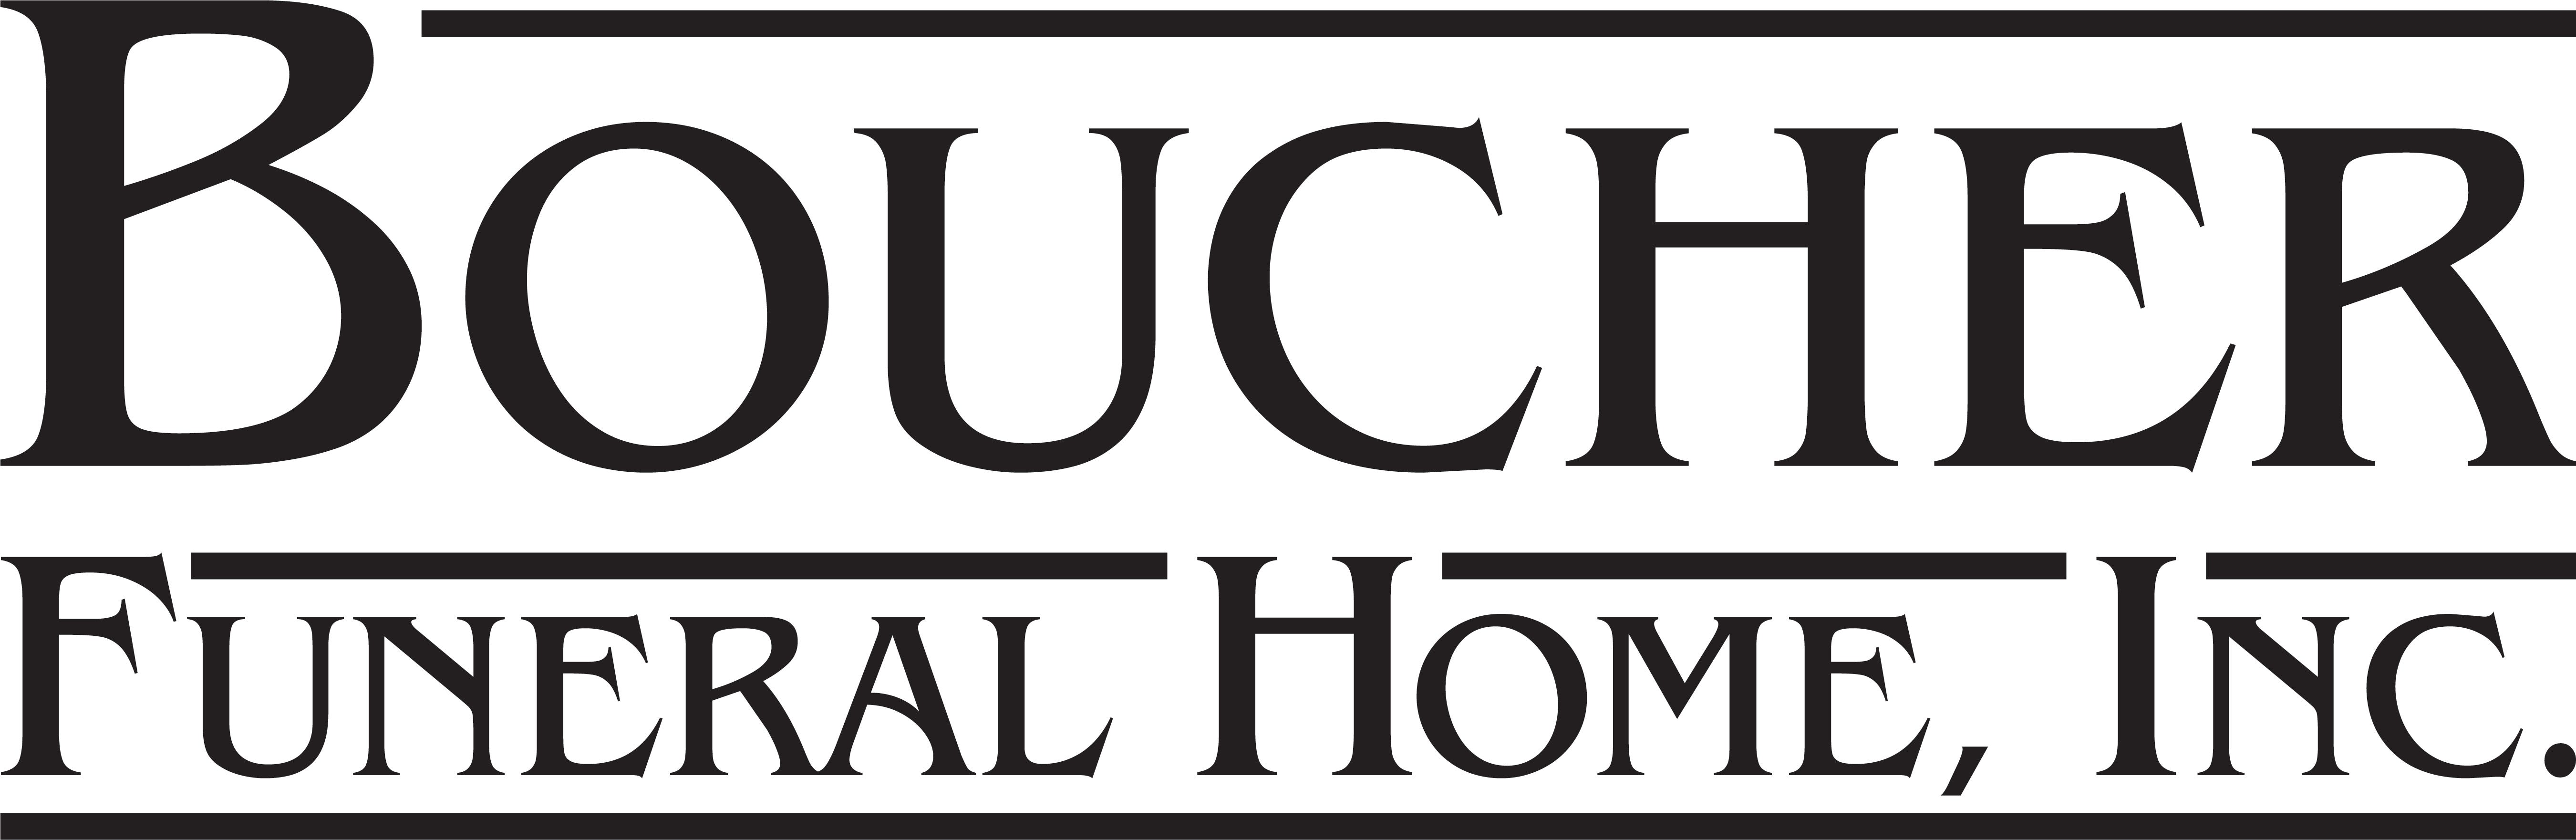 funeral-home-logo